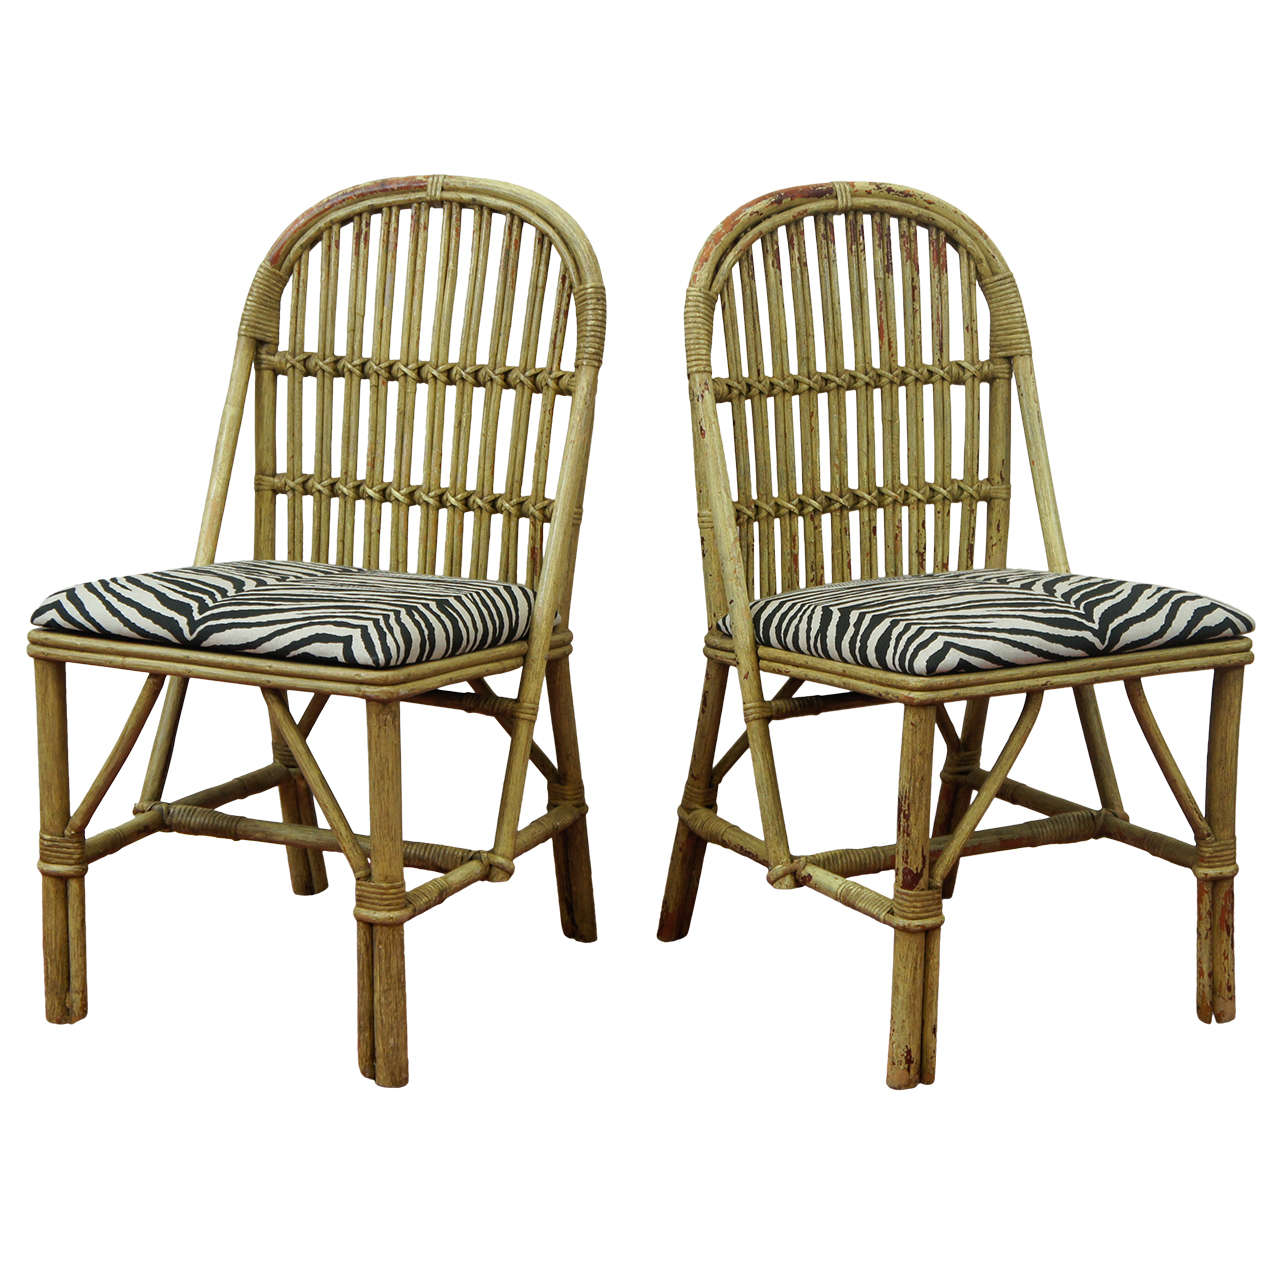 bamboo chairs for sale slim spaces high chair bentwood at 1stdibs